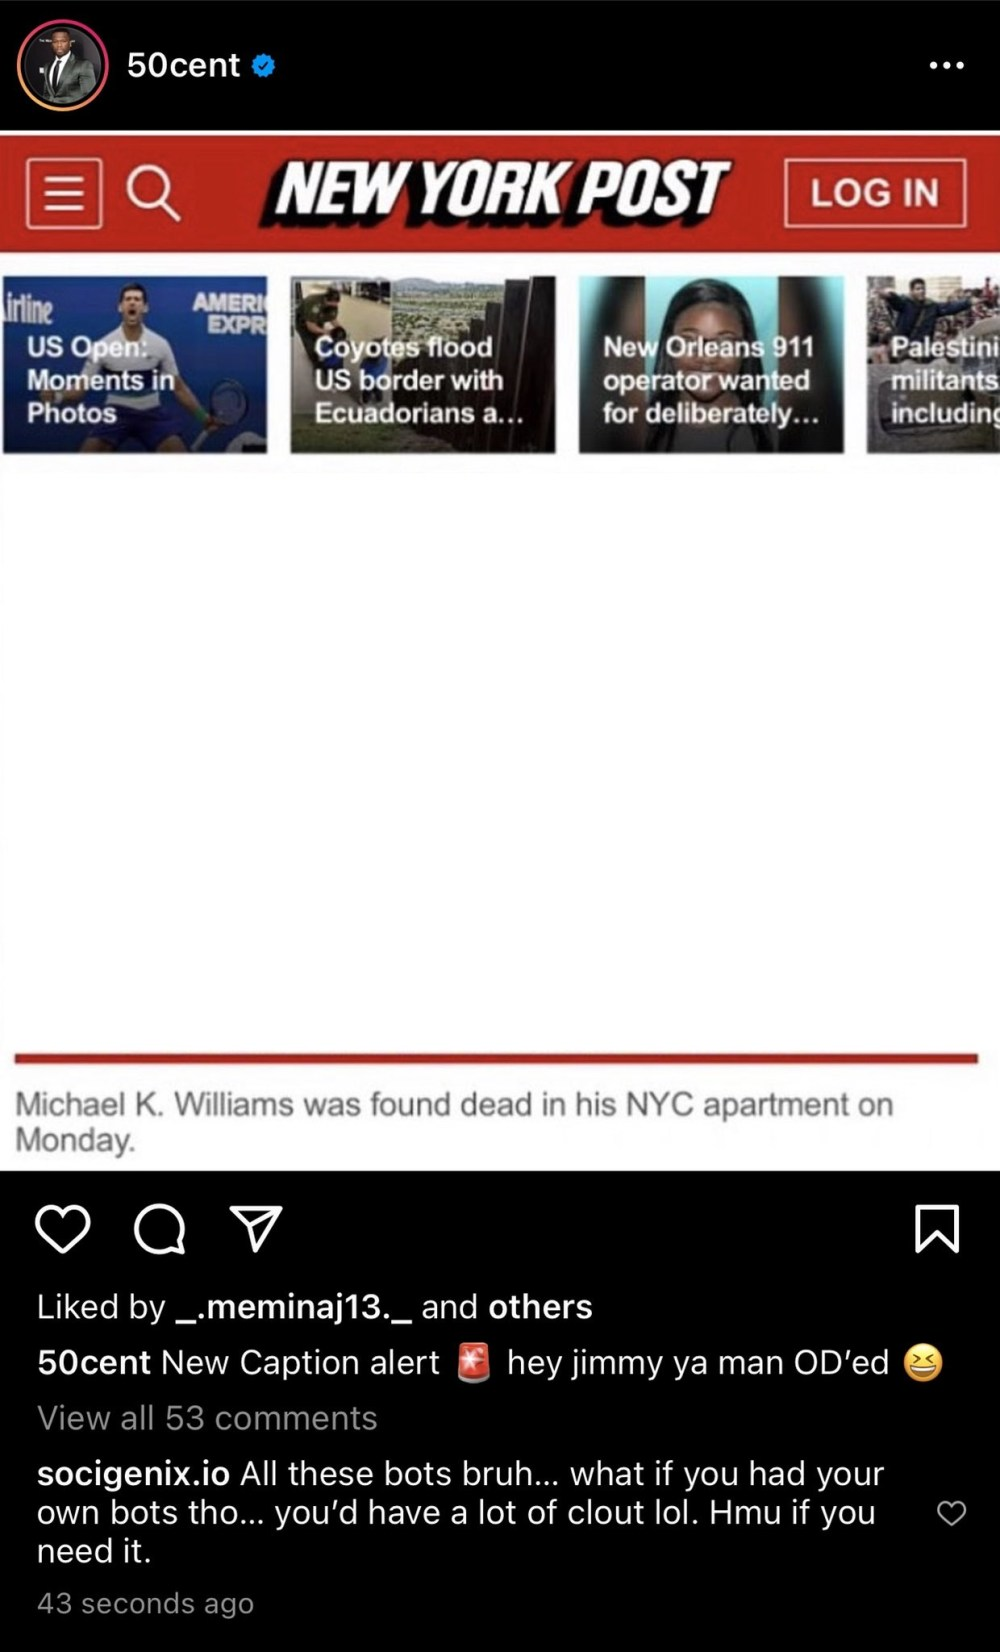 50 Cent dragged for comparing Michael K. Williams death to Raising Kanan characters dying of overdoses